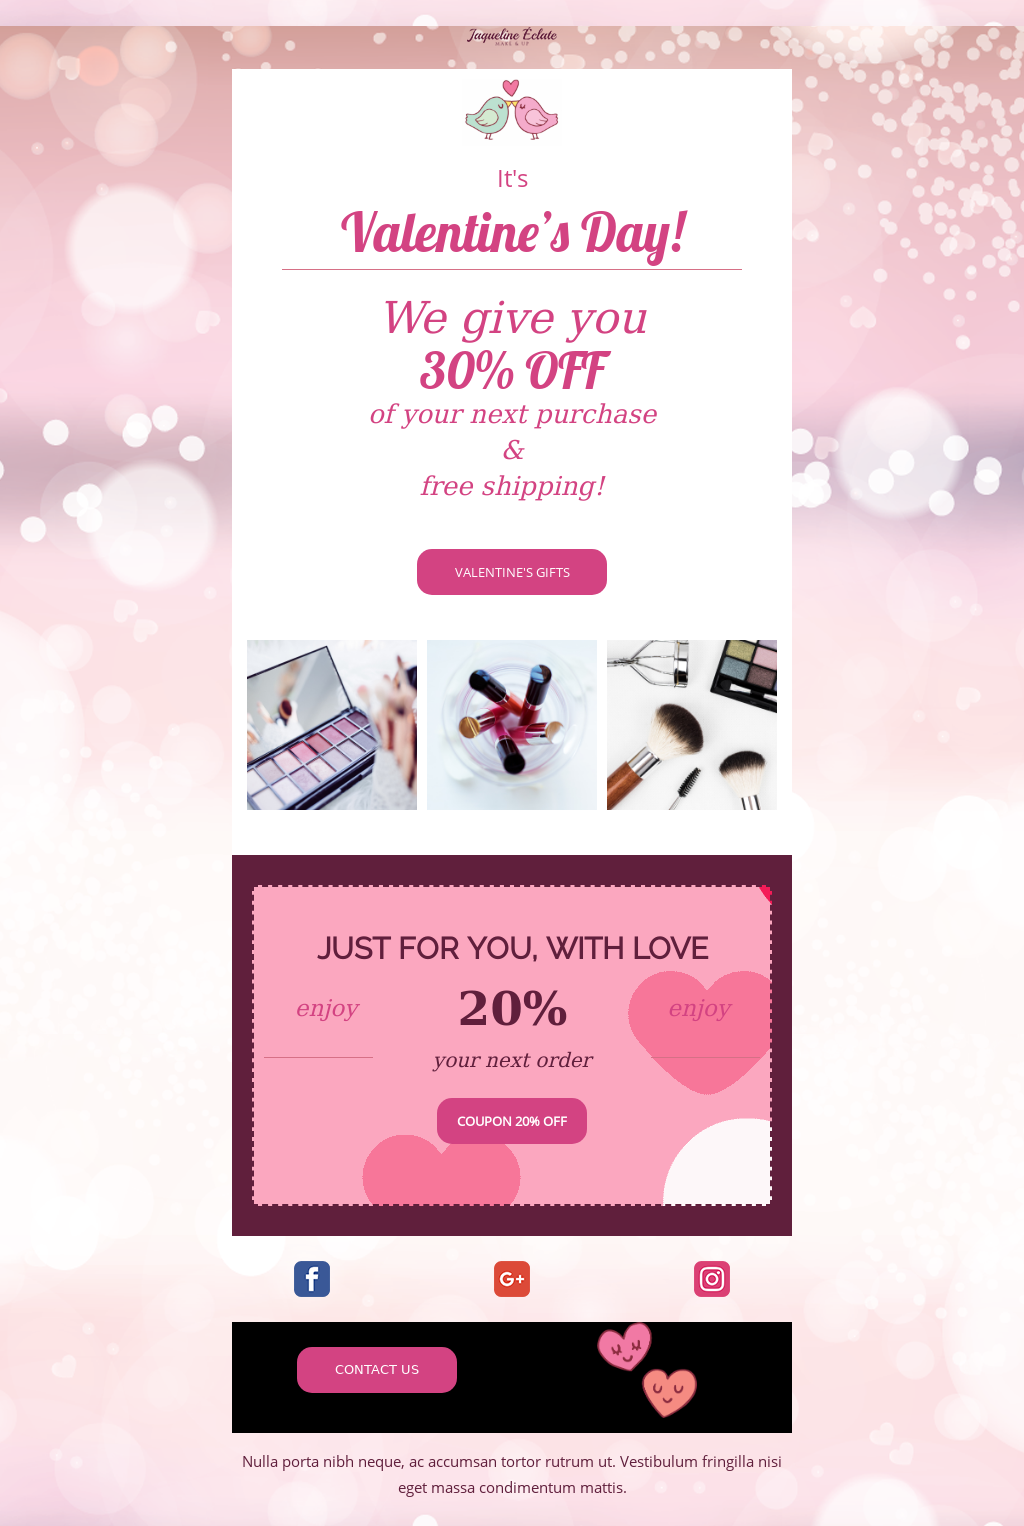 Email Newsletter Template for Valentine's Day